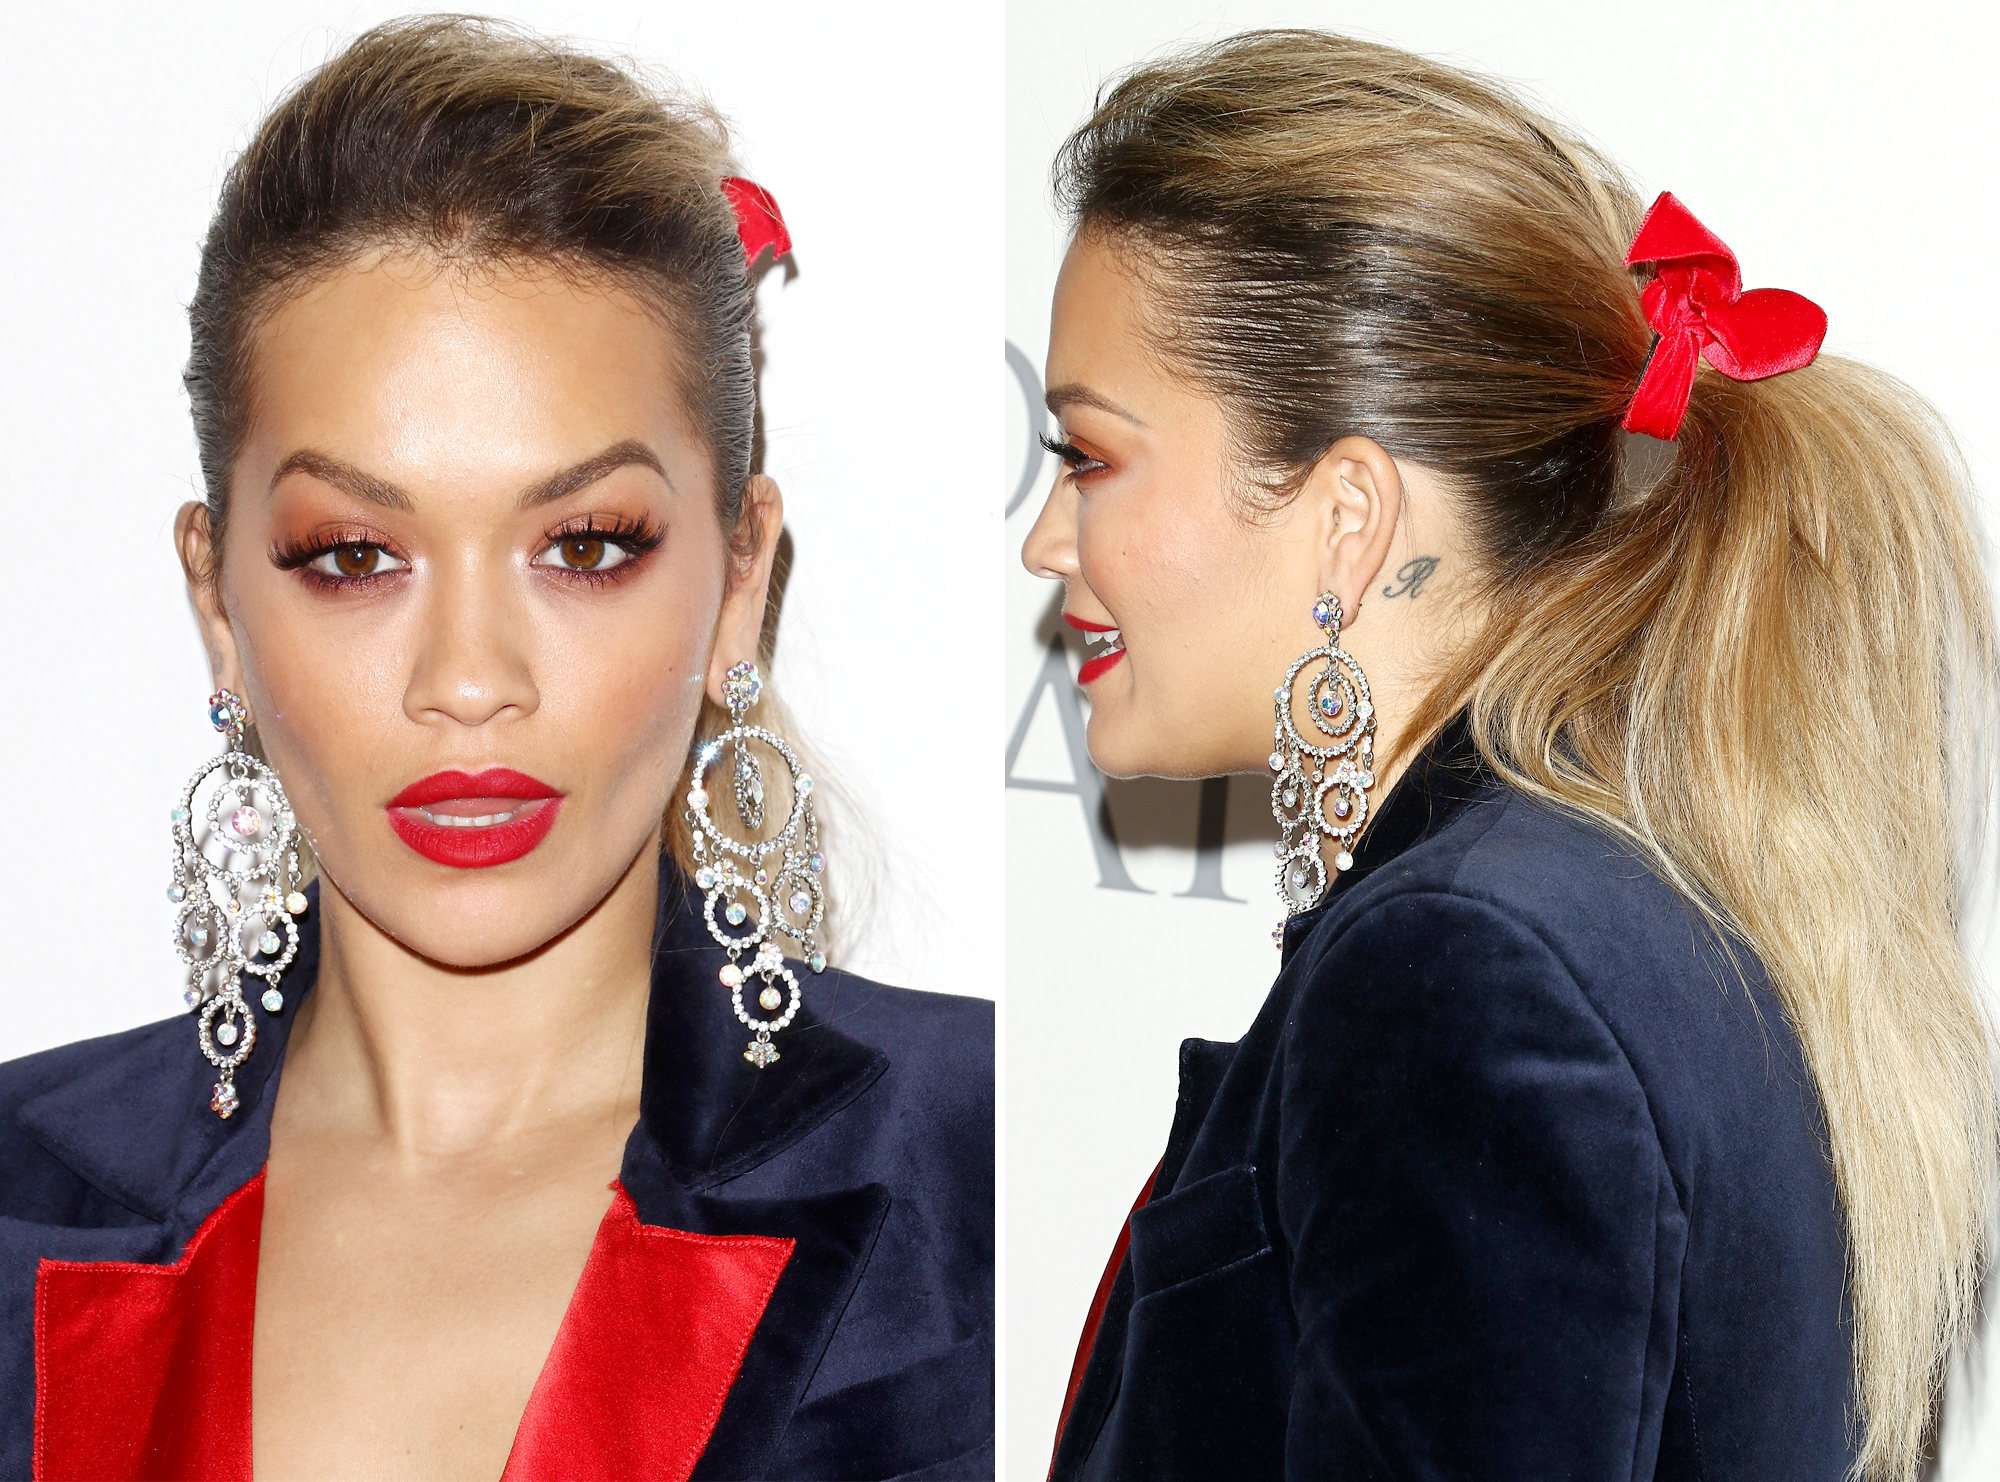 Rita Ora's Red Hair Ribbon